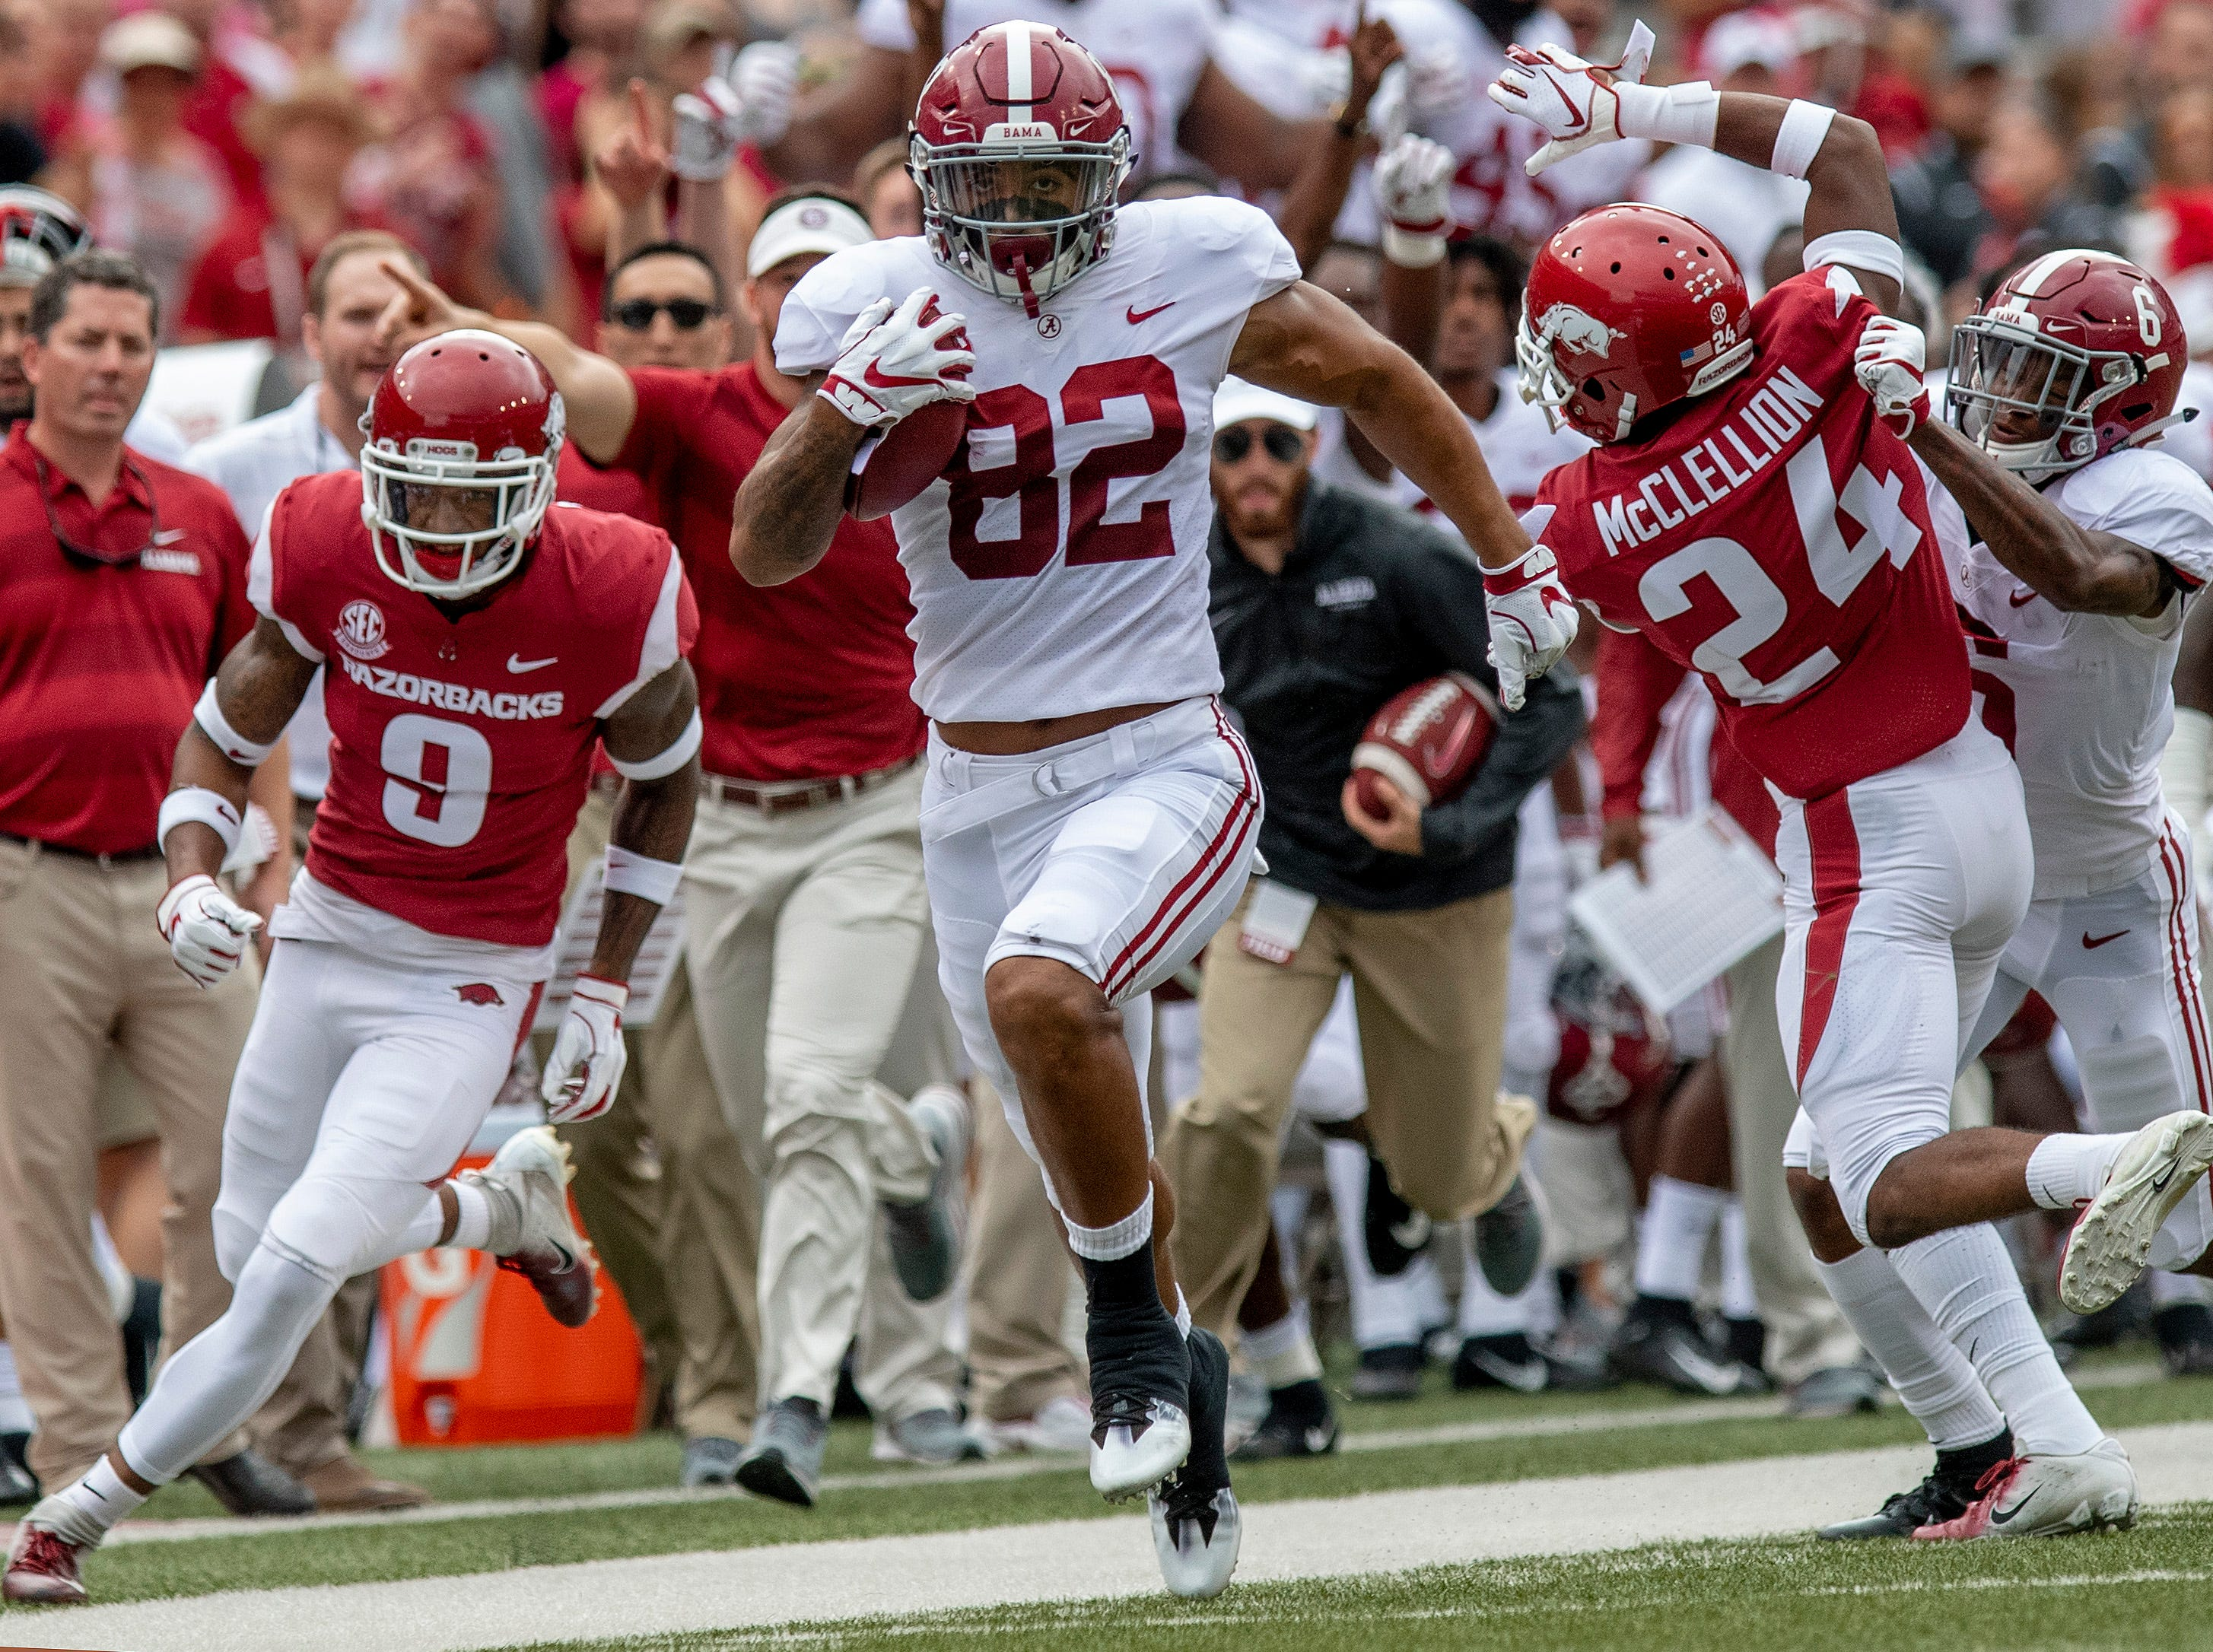 Alabama tight end Irv Smith Jr. (82) breaks free for a log touchdown in the opening minute against against Arkansas in Fayetteville, Ark., on Saturday October 6, 2018.